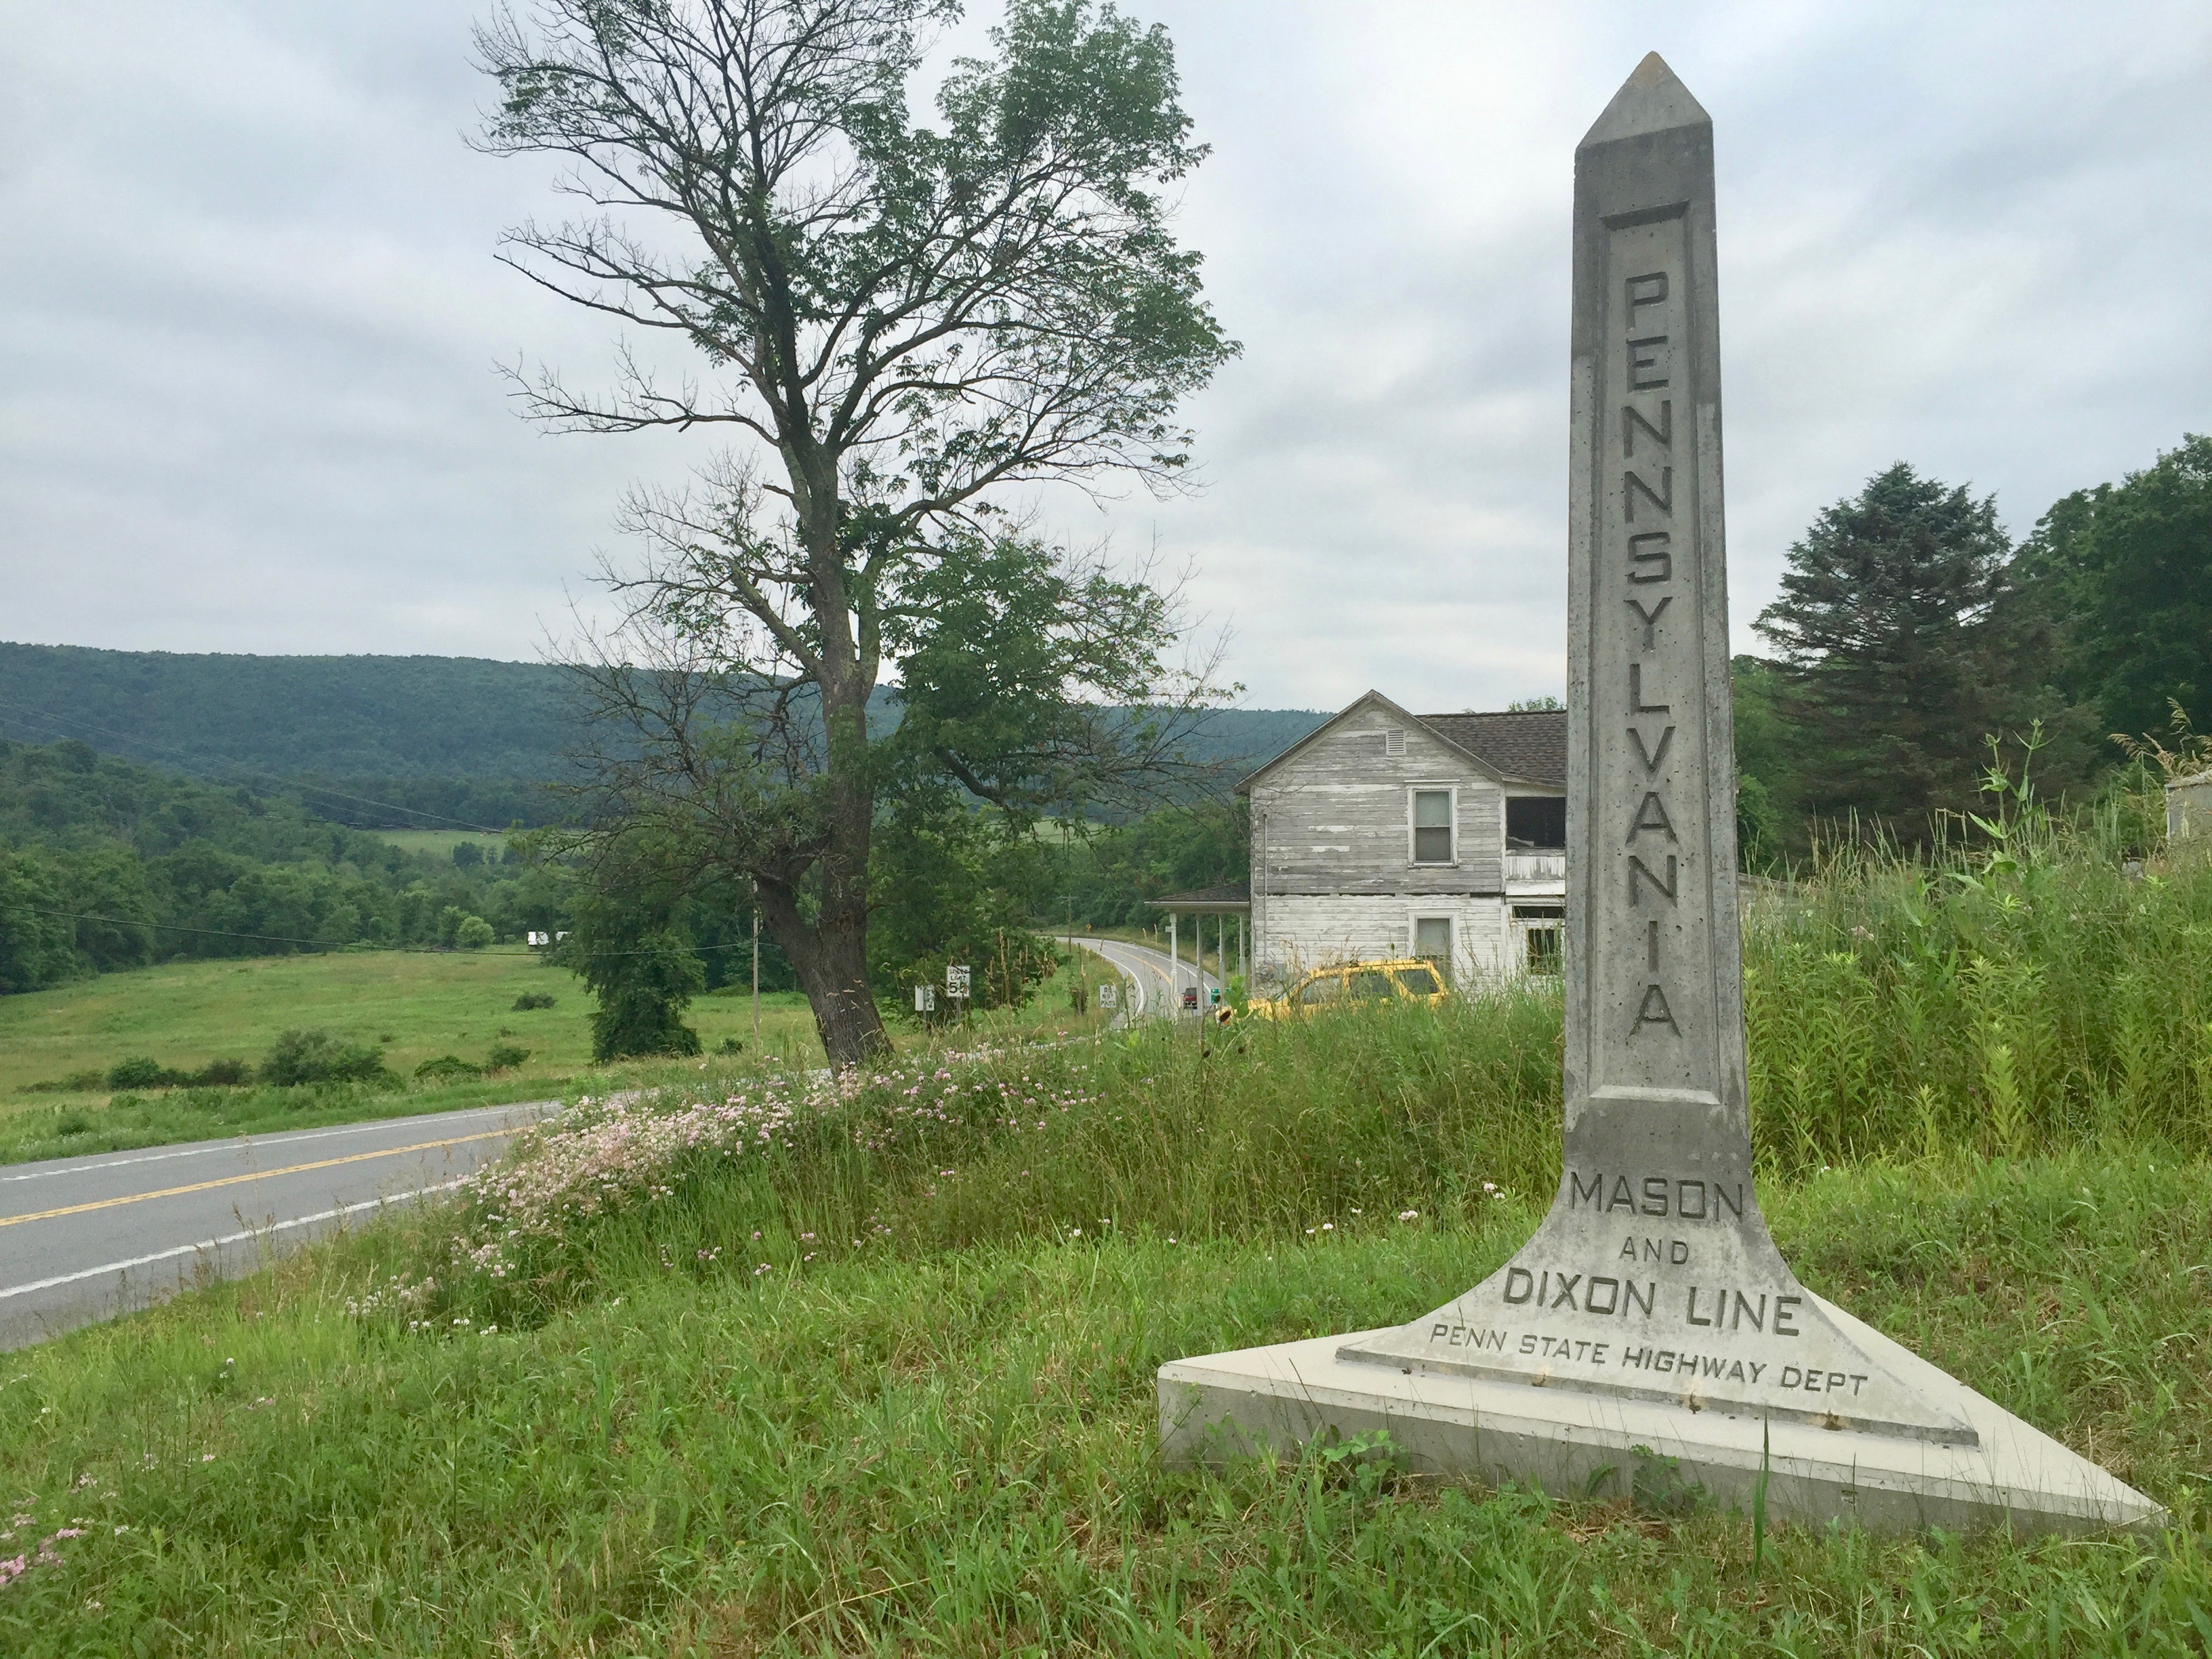 Cumberland Valley Township, Bedford County, Pennsylvania